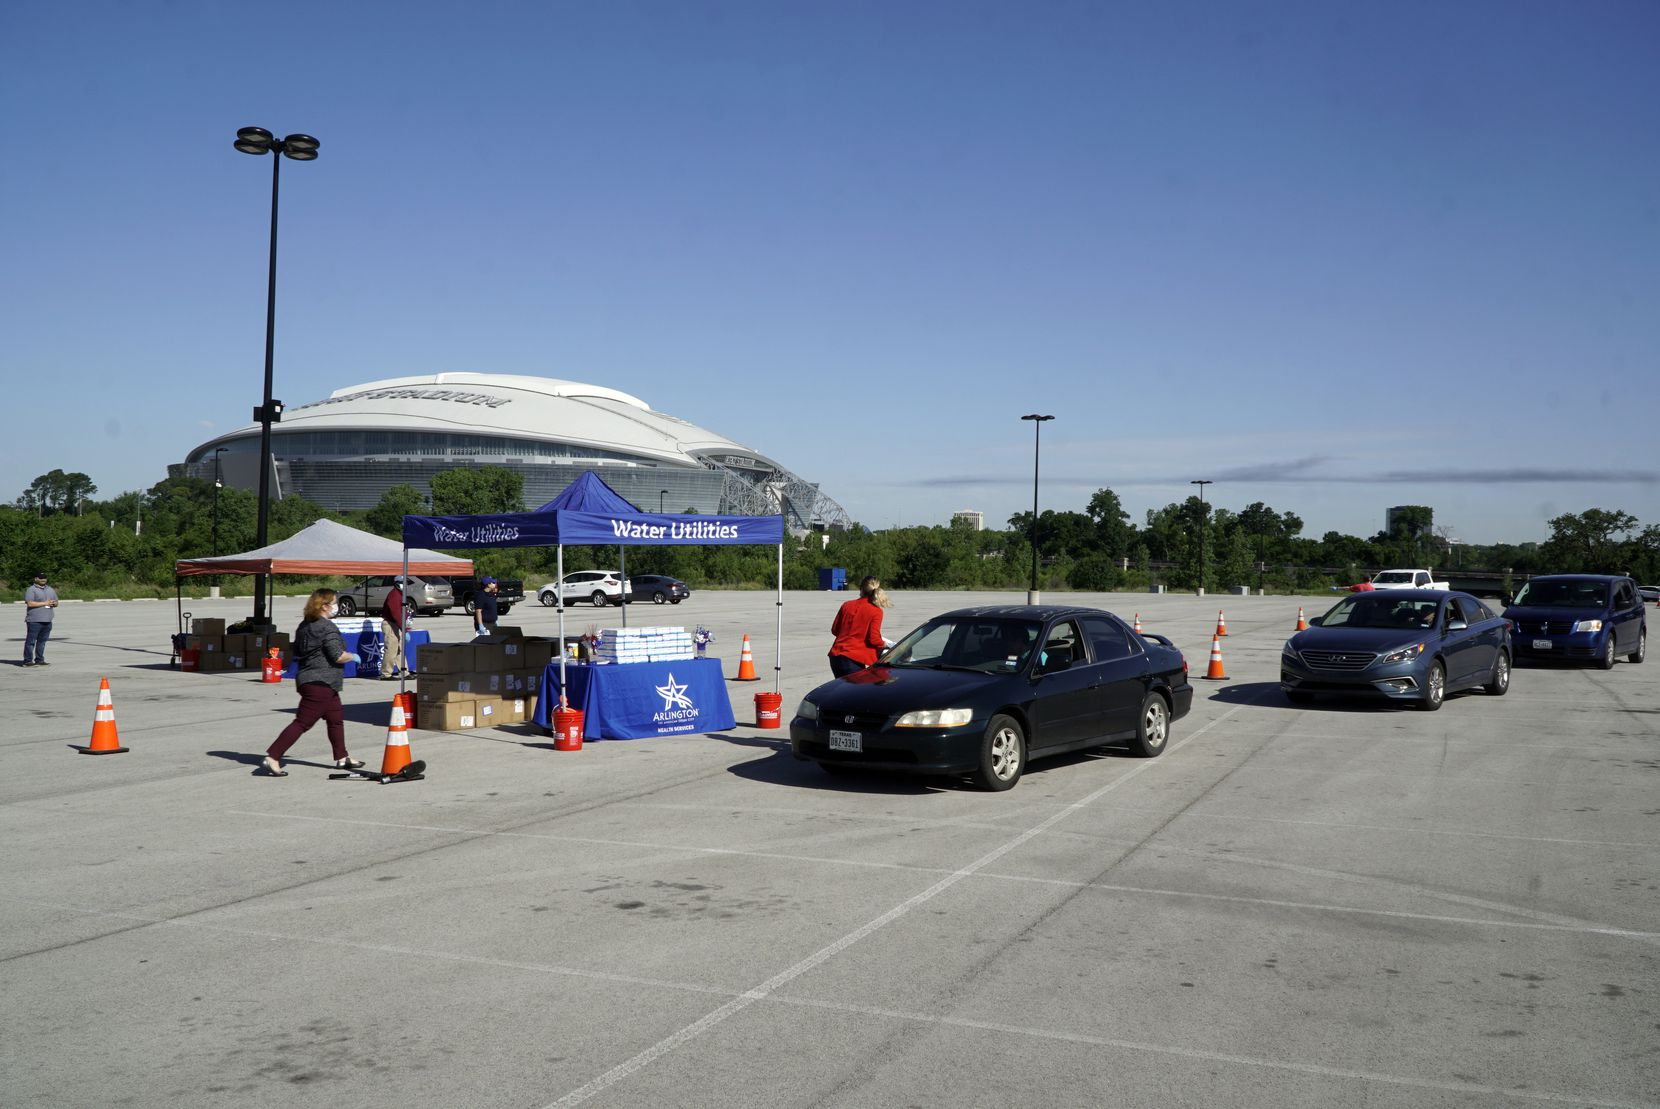 The City of Arlington in partnership with Tarrant County, the Texas Rangers, Greater Arlington Chamber of Commerce, and Arlington Convention and Visitors Bureau provided protective masks for free to employees in the parking lot of Globe Life Park in Arlington businesses and restaurants in Arlington, Texas on Wednesday, May 6, 2020.